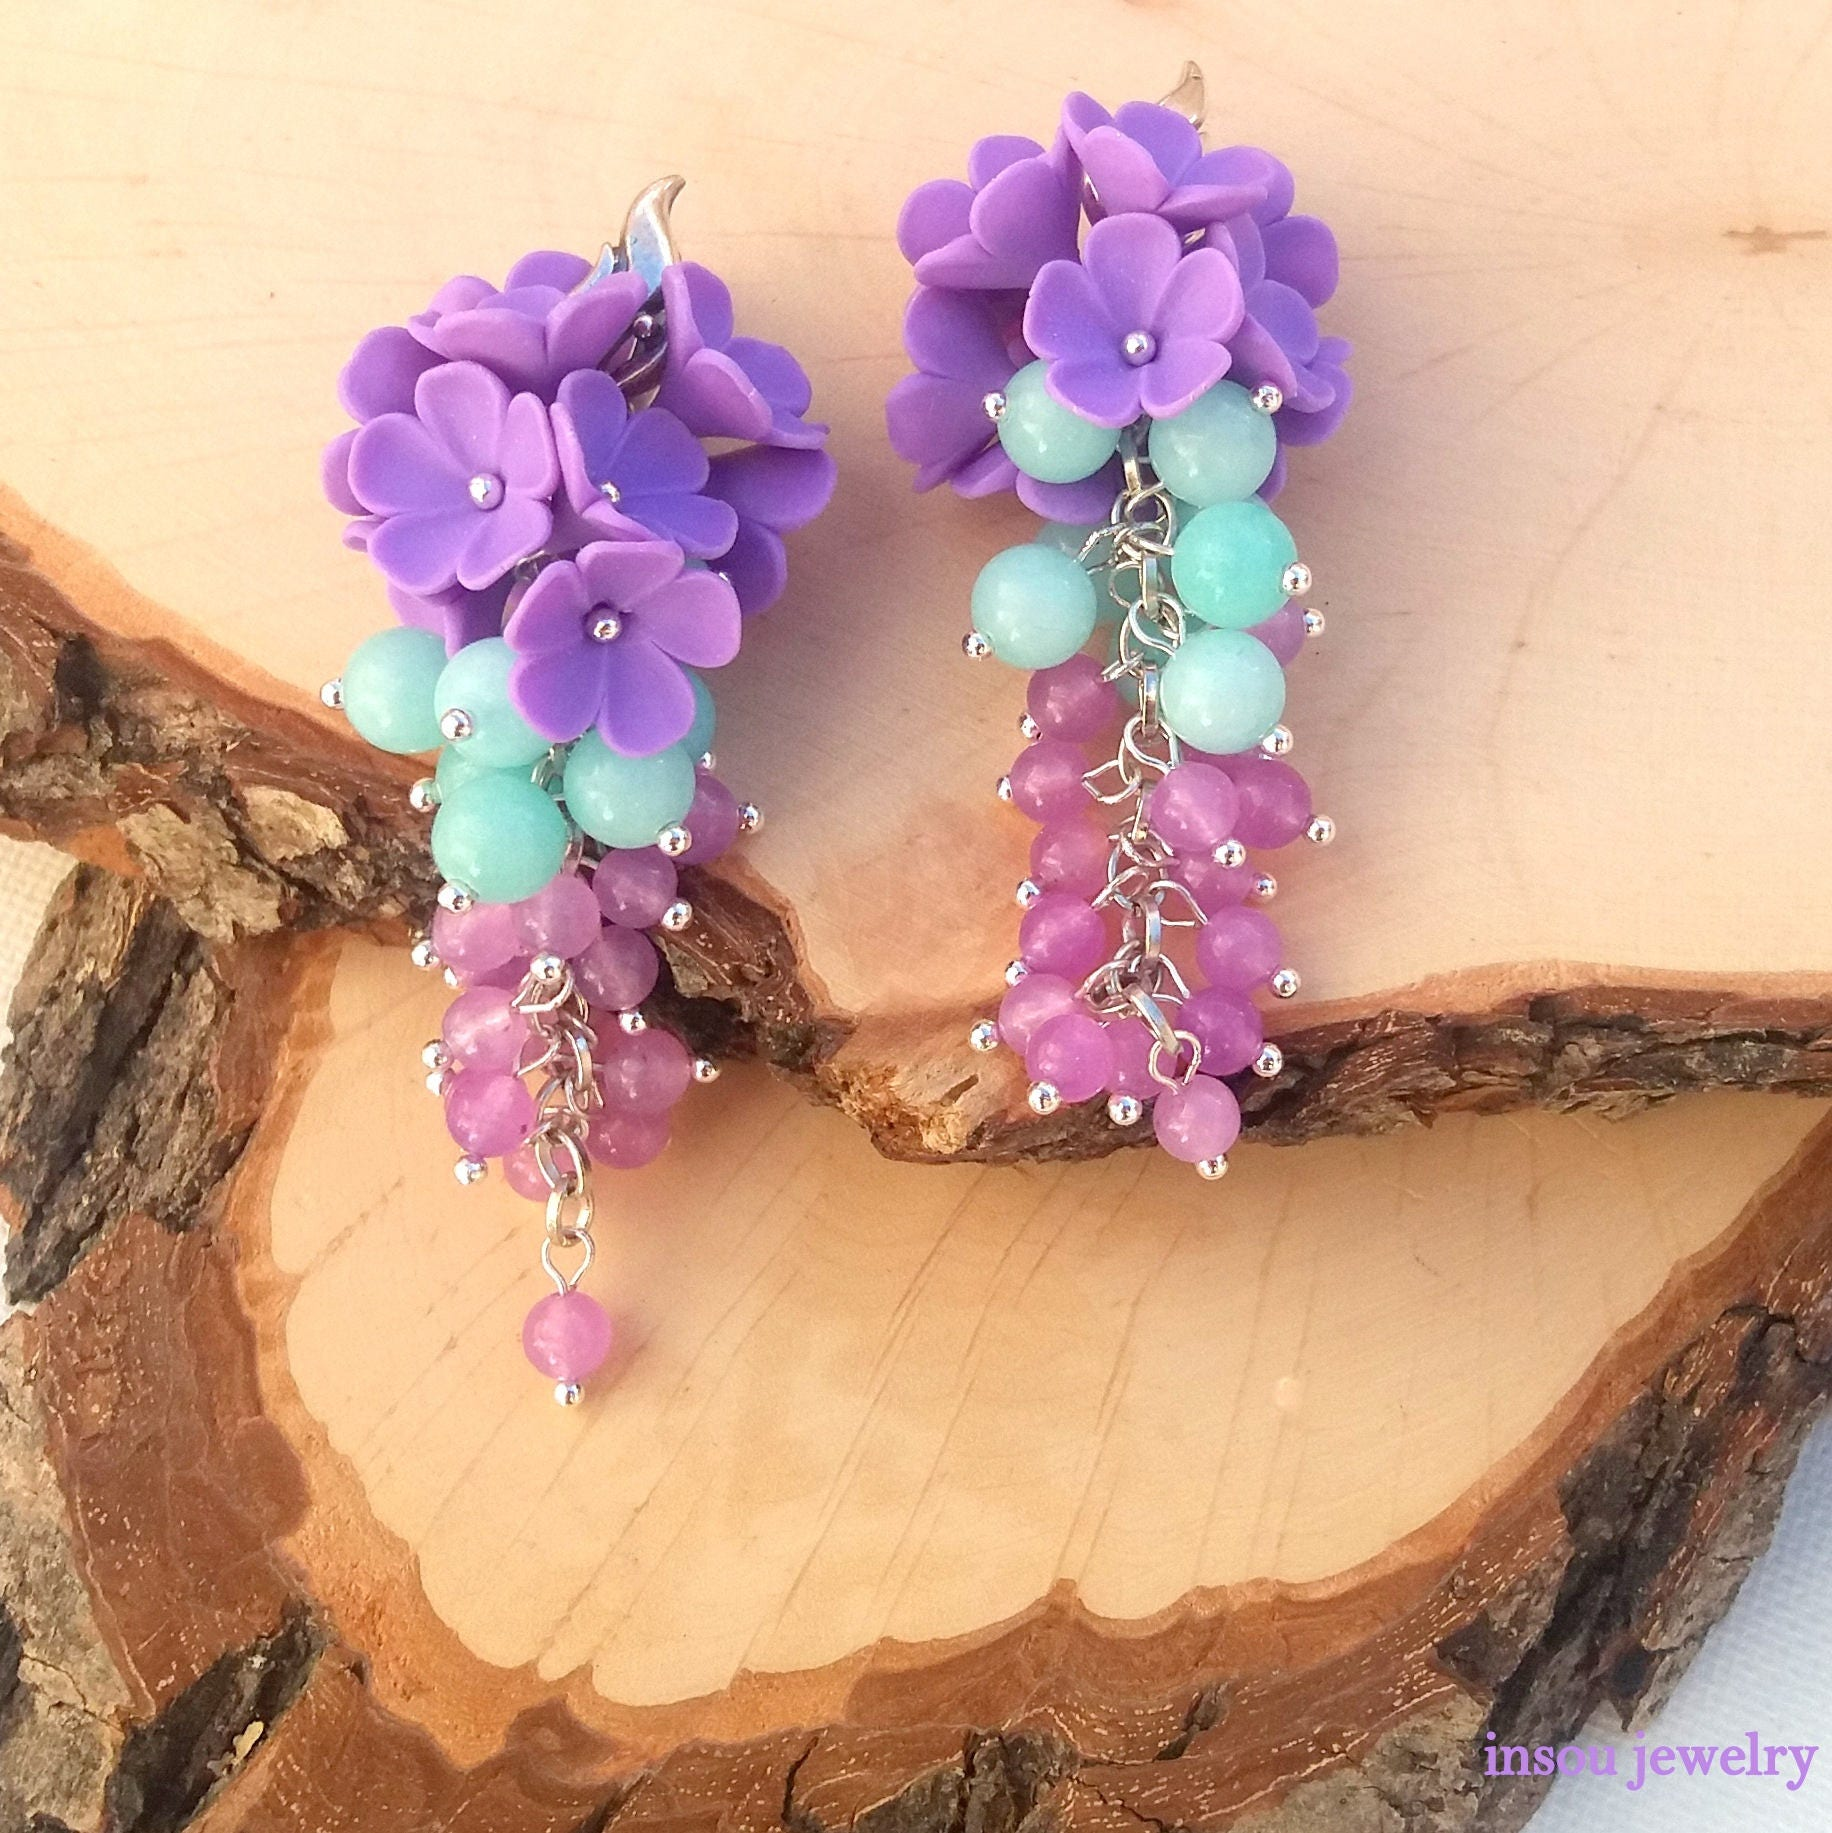 il p purple friend fullxfull boho earrings terrarium tiny jewelry hippie flower dried